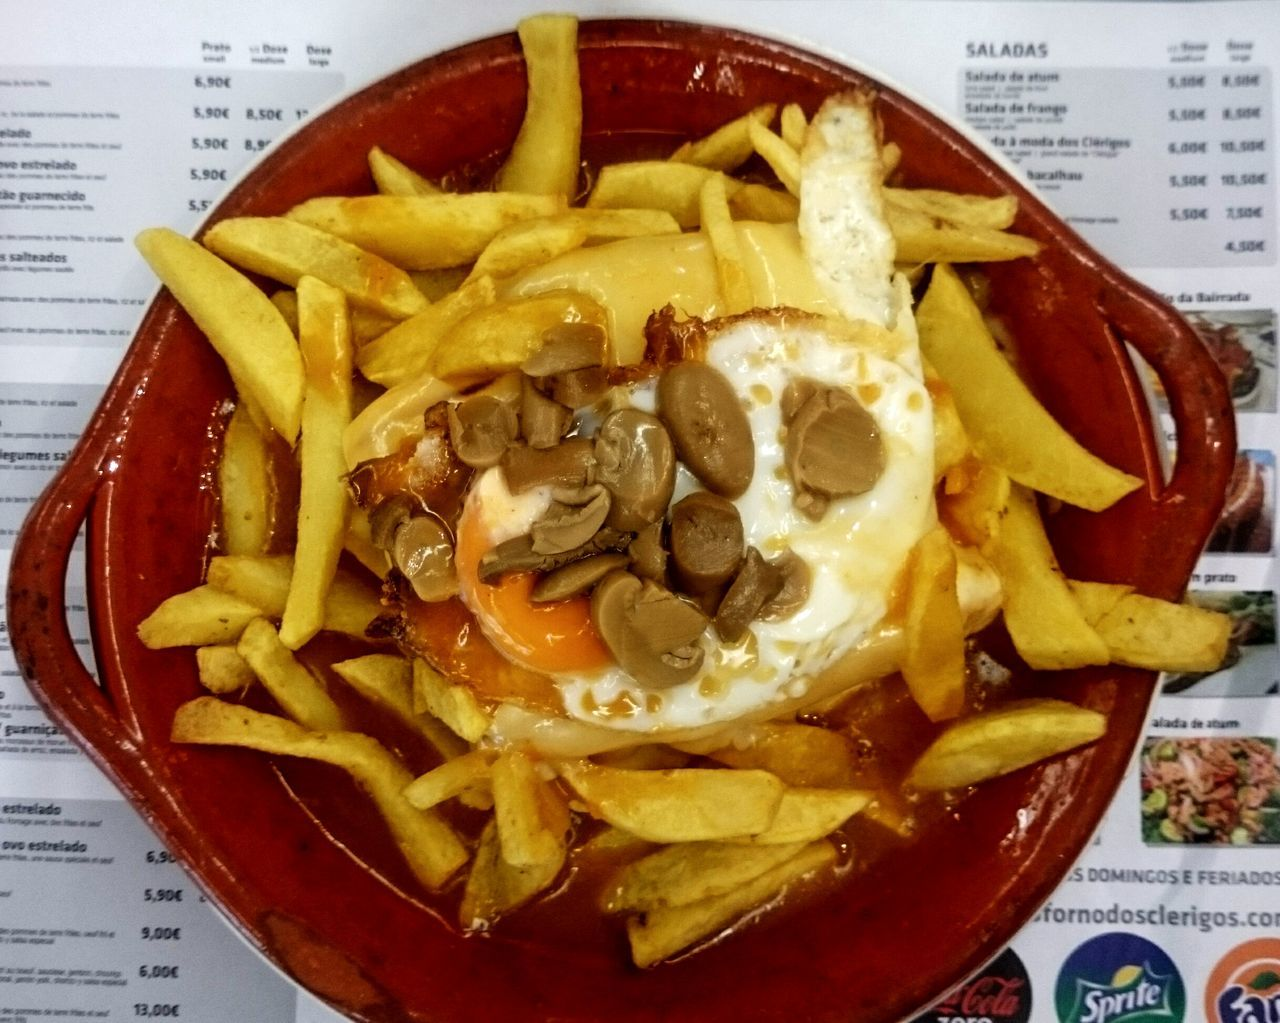 Another fine Porto tradition: franceshina. Layers of meat and cheese on toast. With an egg, chips and spicy sauce.